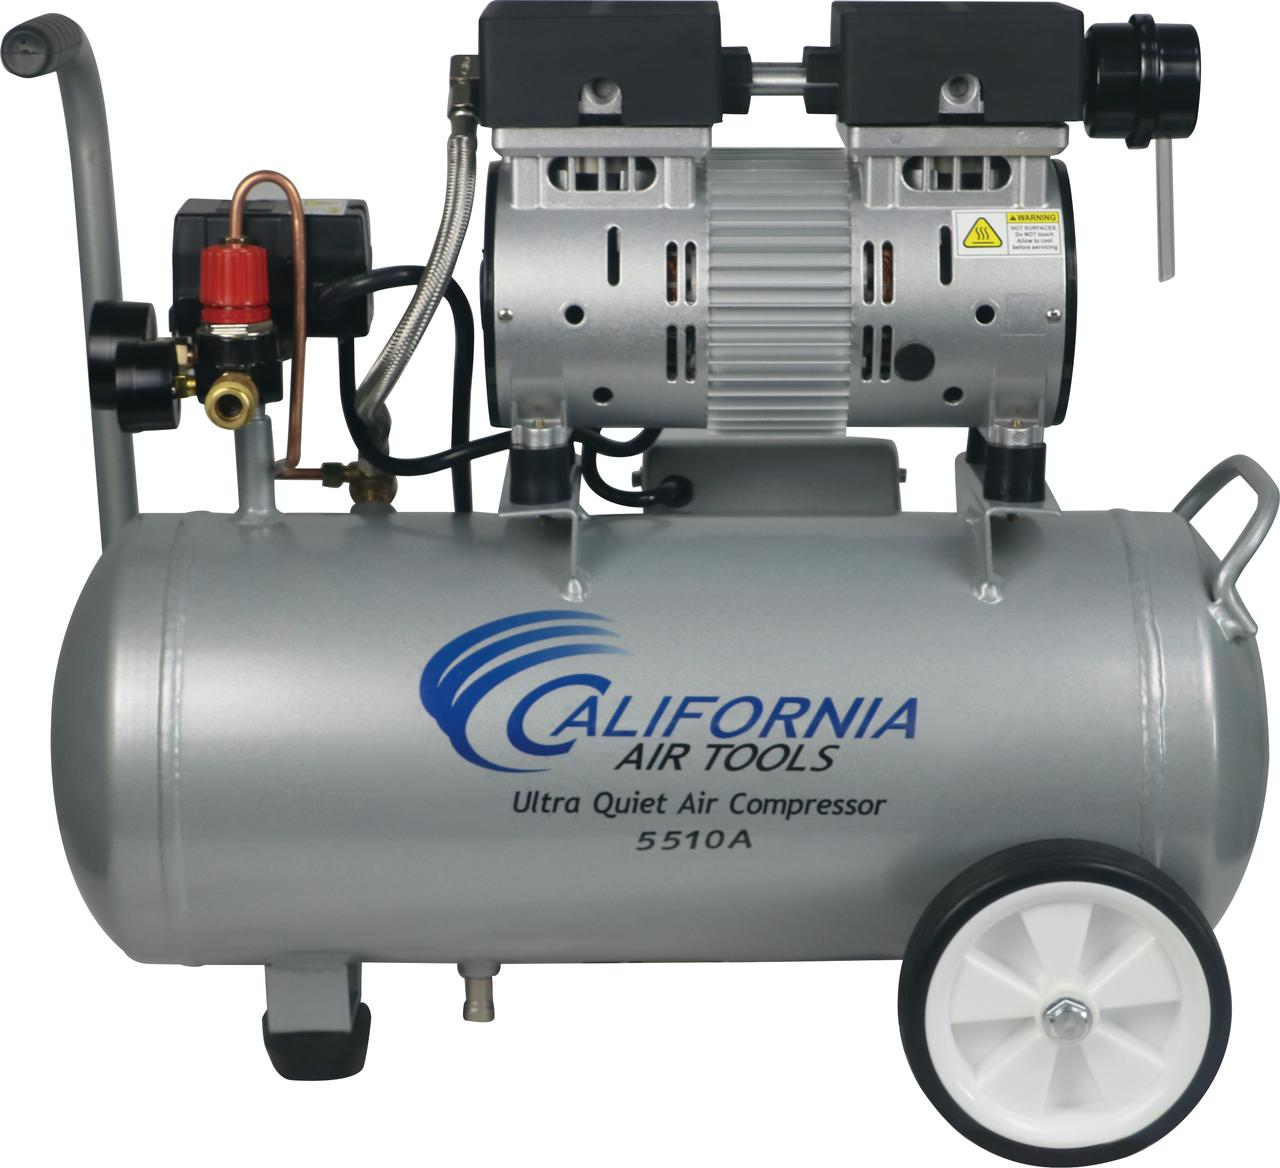 California Air Tools 5510A Ultra Quiet & Oil-Free 1.0 Hp, 5.5 Gal. Aluminum Tank Air Compressor